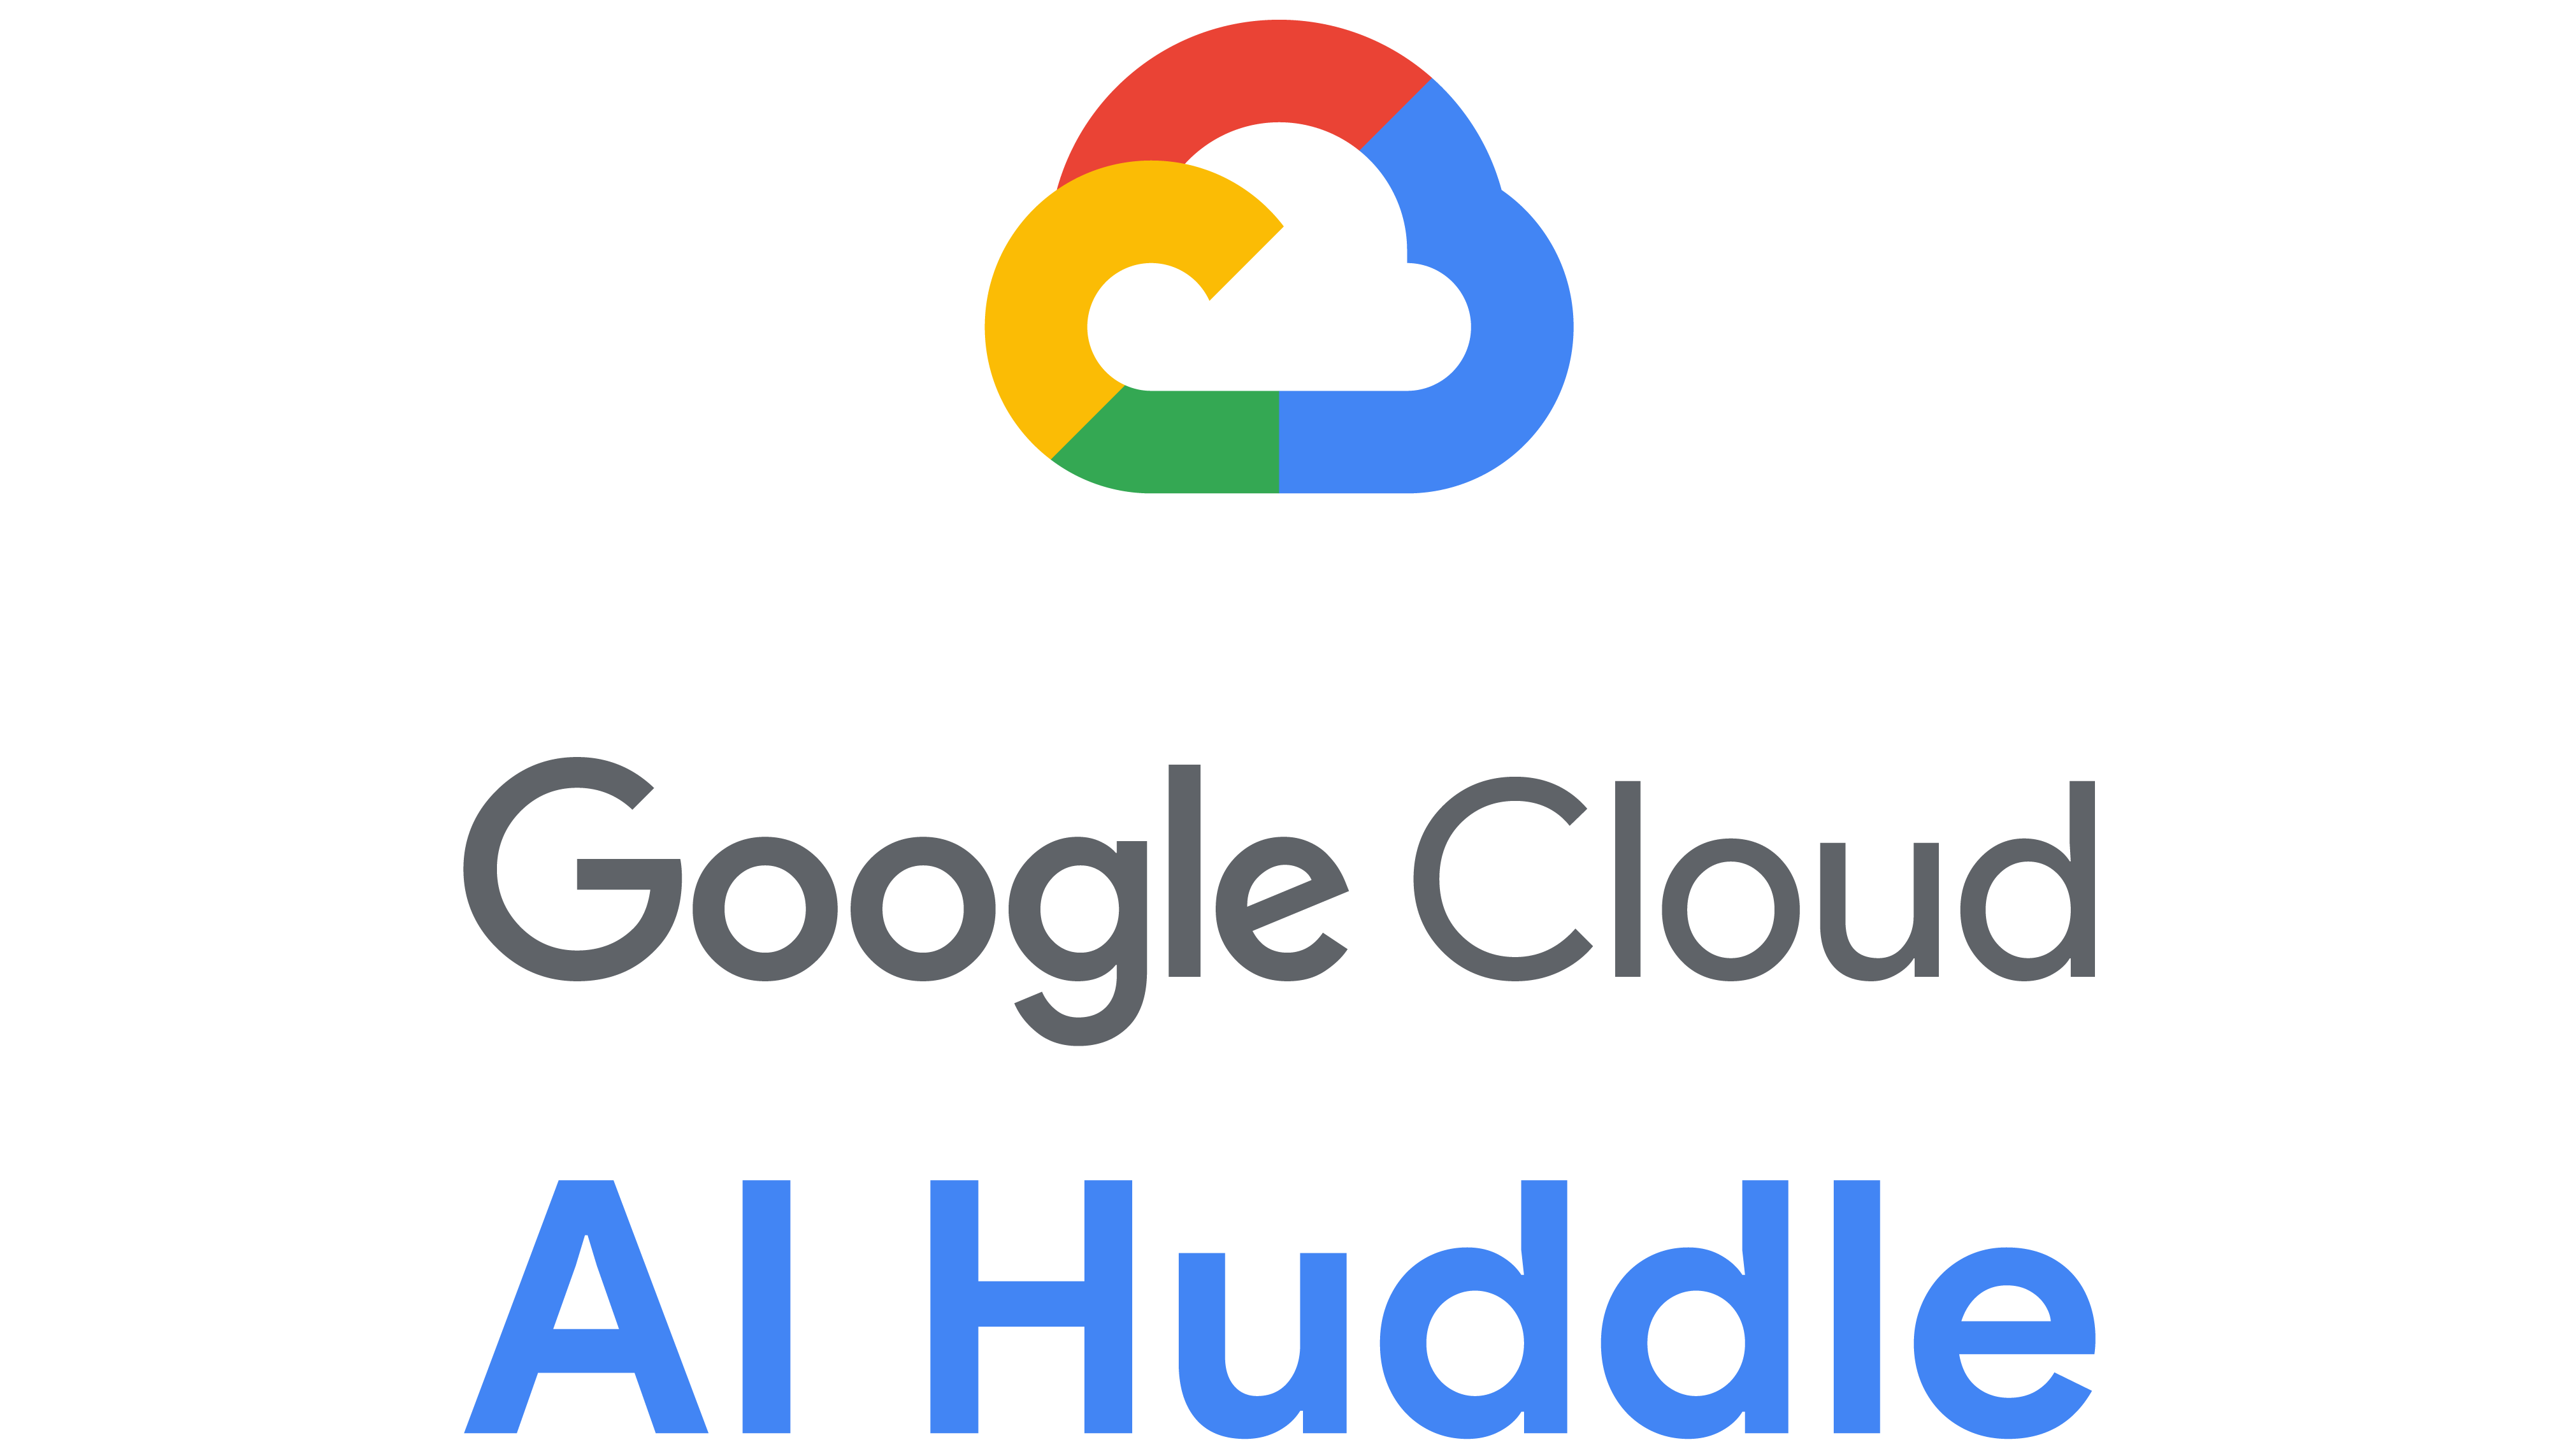 Deep Learning Images For Google Cloud Engine - The